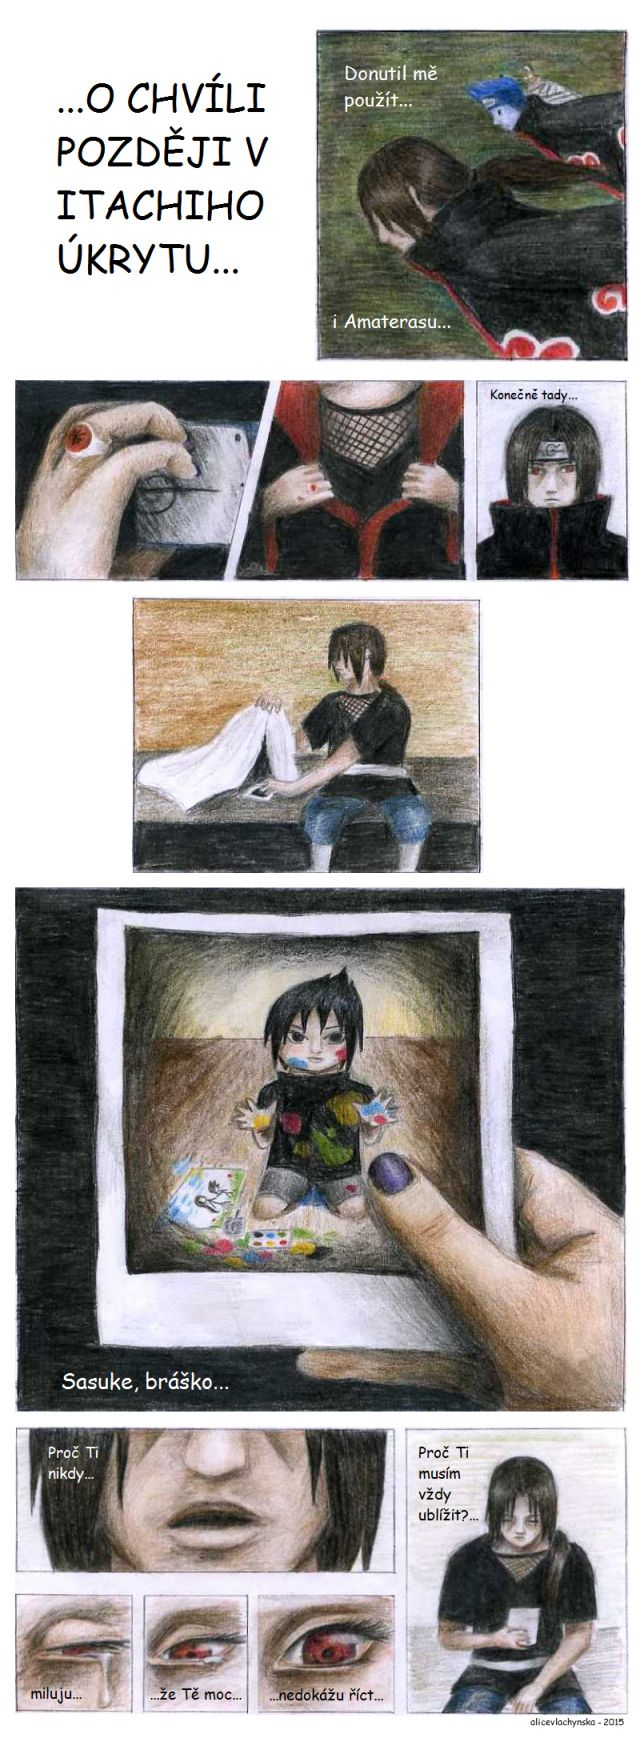 Comics about Itachi - read from right to left!  Translation:  ...He made me to use... Amaterasu... (1)  ...Few minutes later in Itachi's hideout... (2)  ...Finally I'm here... (3)  ... (4,5,6)  ...Sasuke, brother... (7)  ...why I must always hurt you?... (8)  ...Why I can't tell you, that I love you so much... (9,10,11,12)     :'(       (drawed by me)